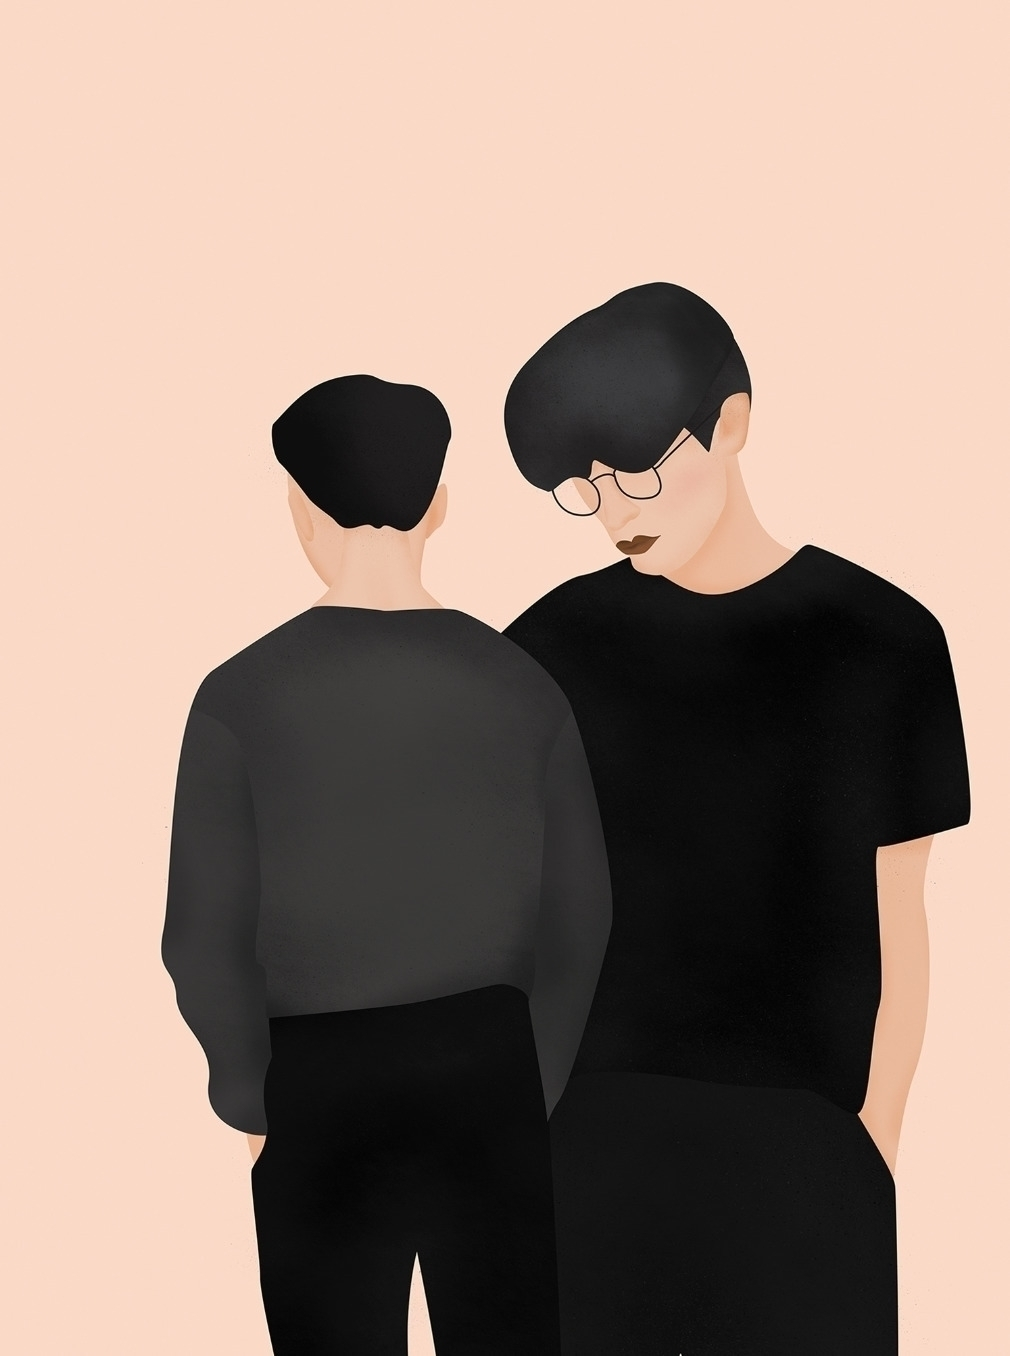 Duo - editorial, illustration - valeryl | ello